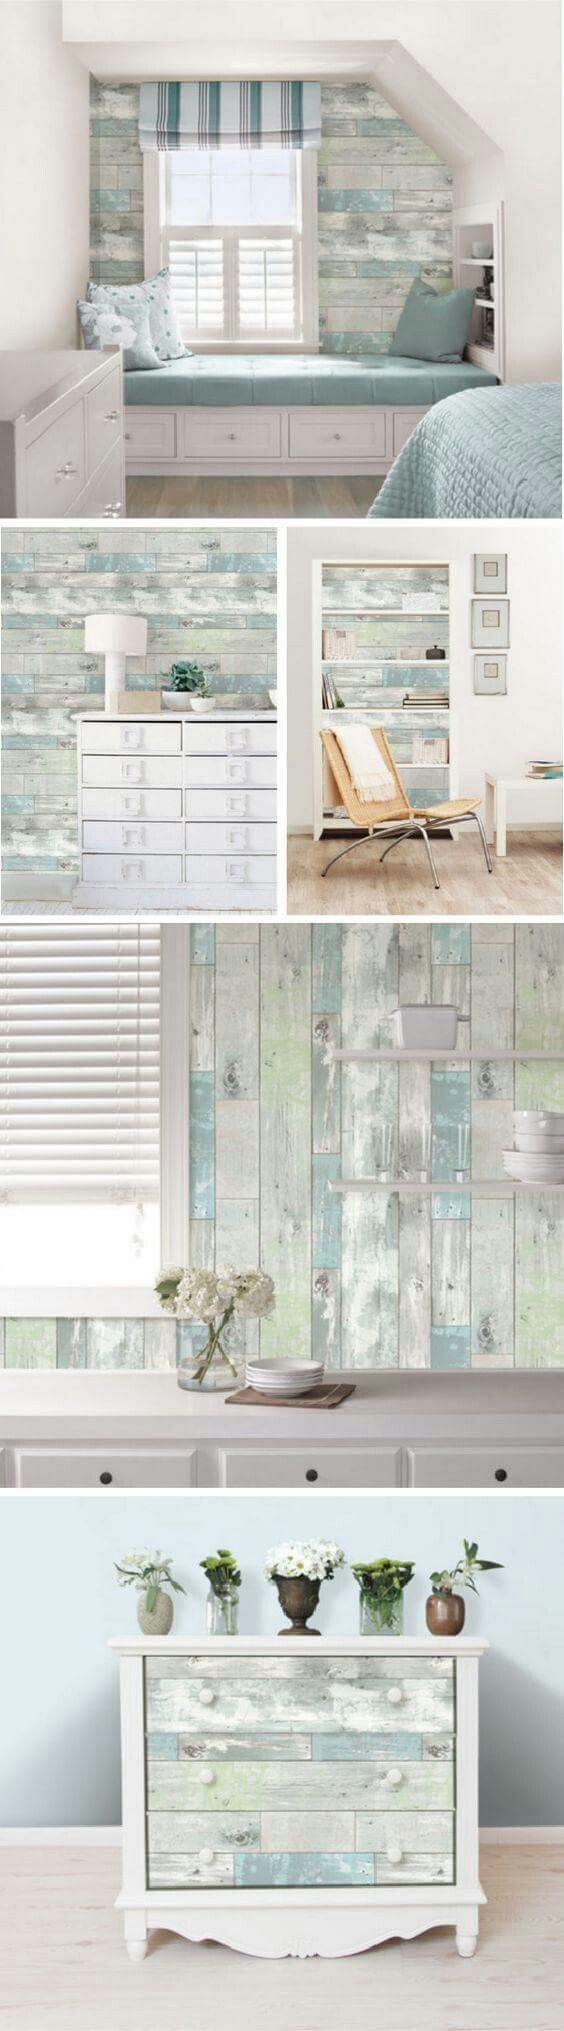 Bunk Room on the wall   Coastal Style   Pinterest   Bunk rooms ...